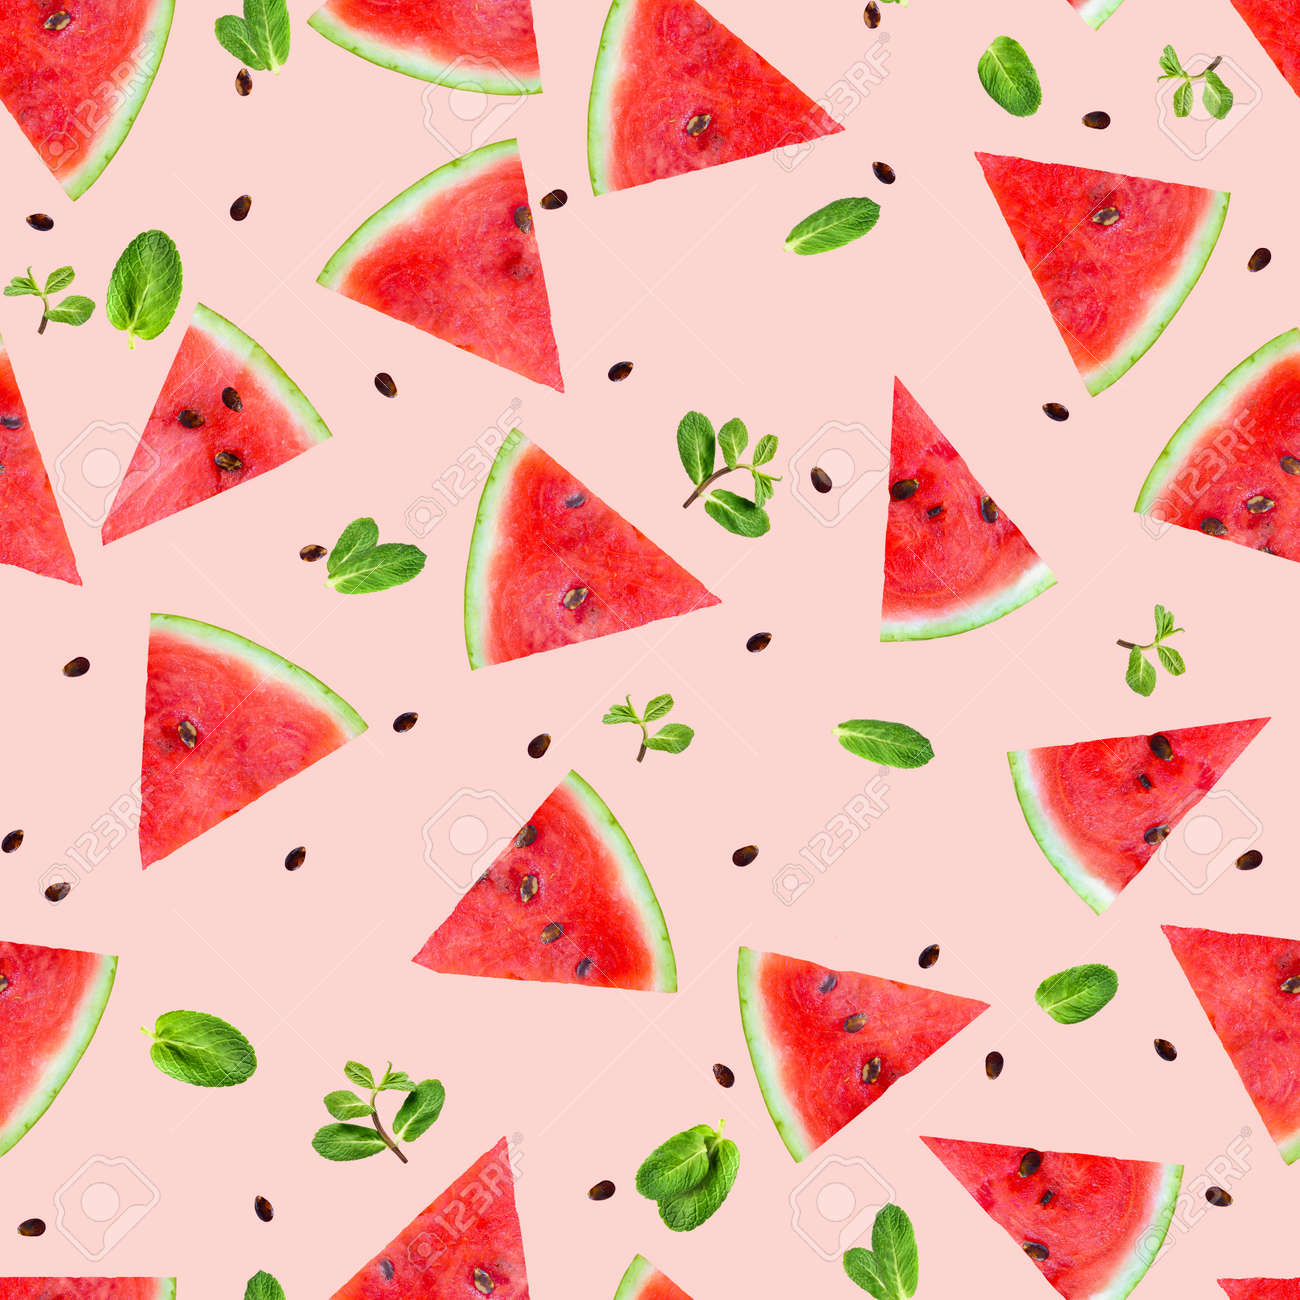 Pattern of watermelon slices with fresh mint leaves. - 171379351